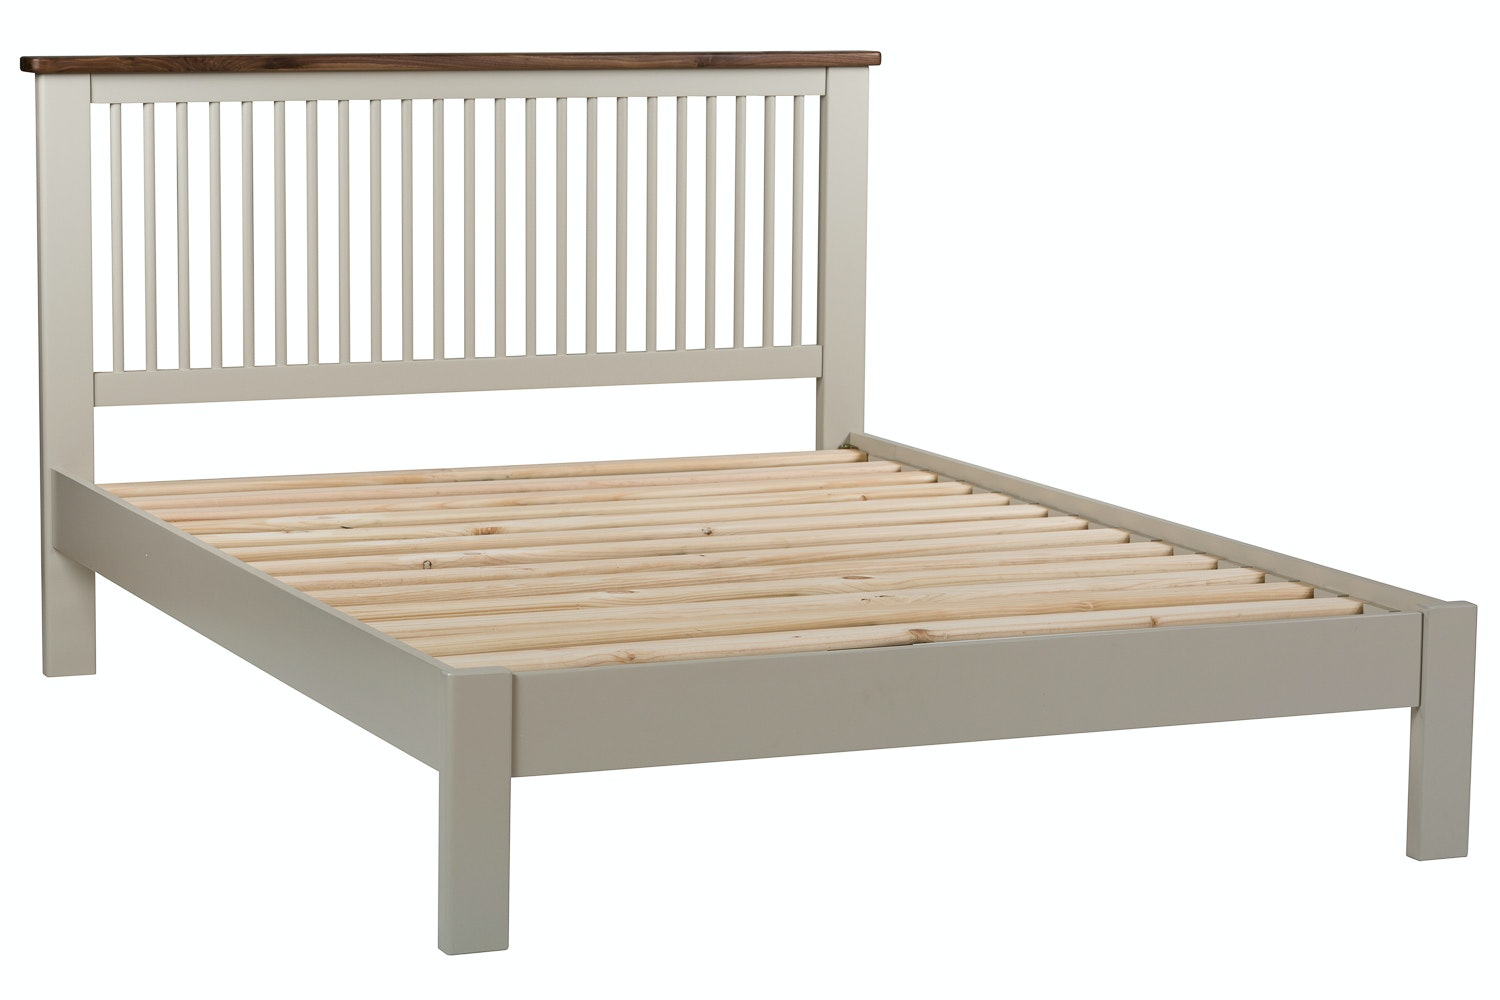 Kent King Round Slat Bed Frame | 5ft